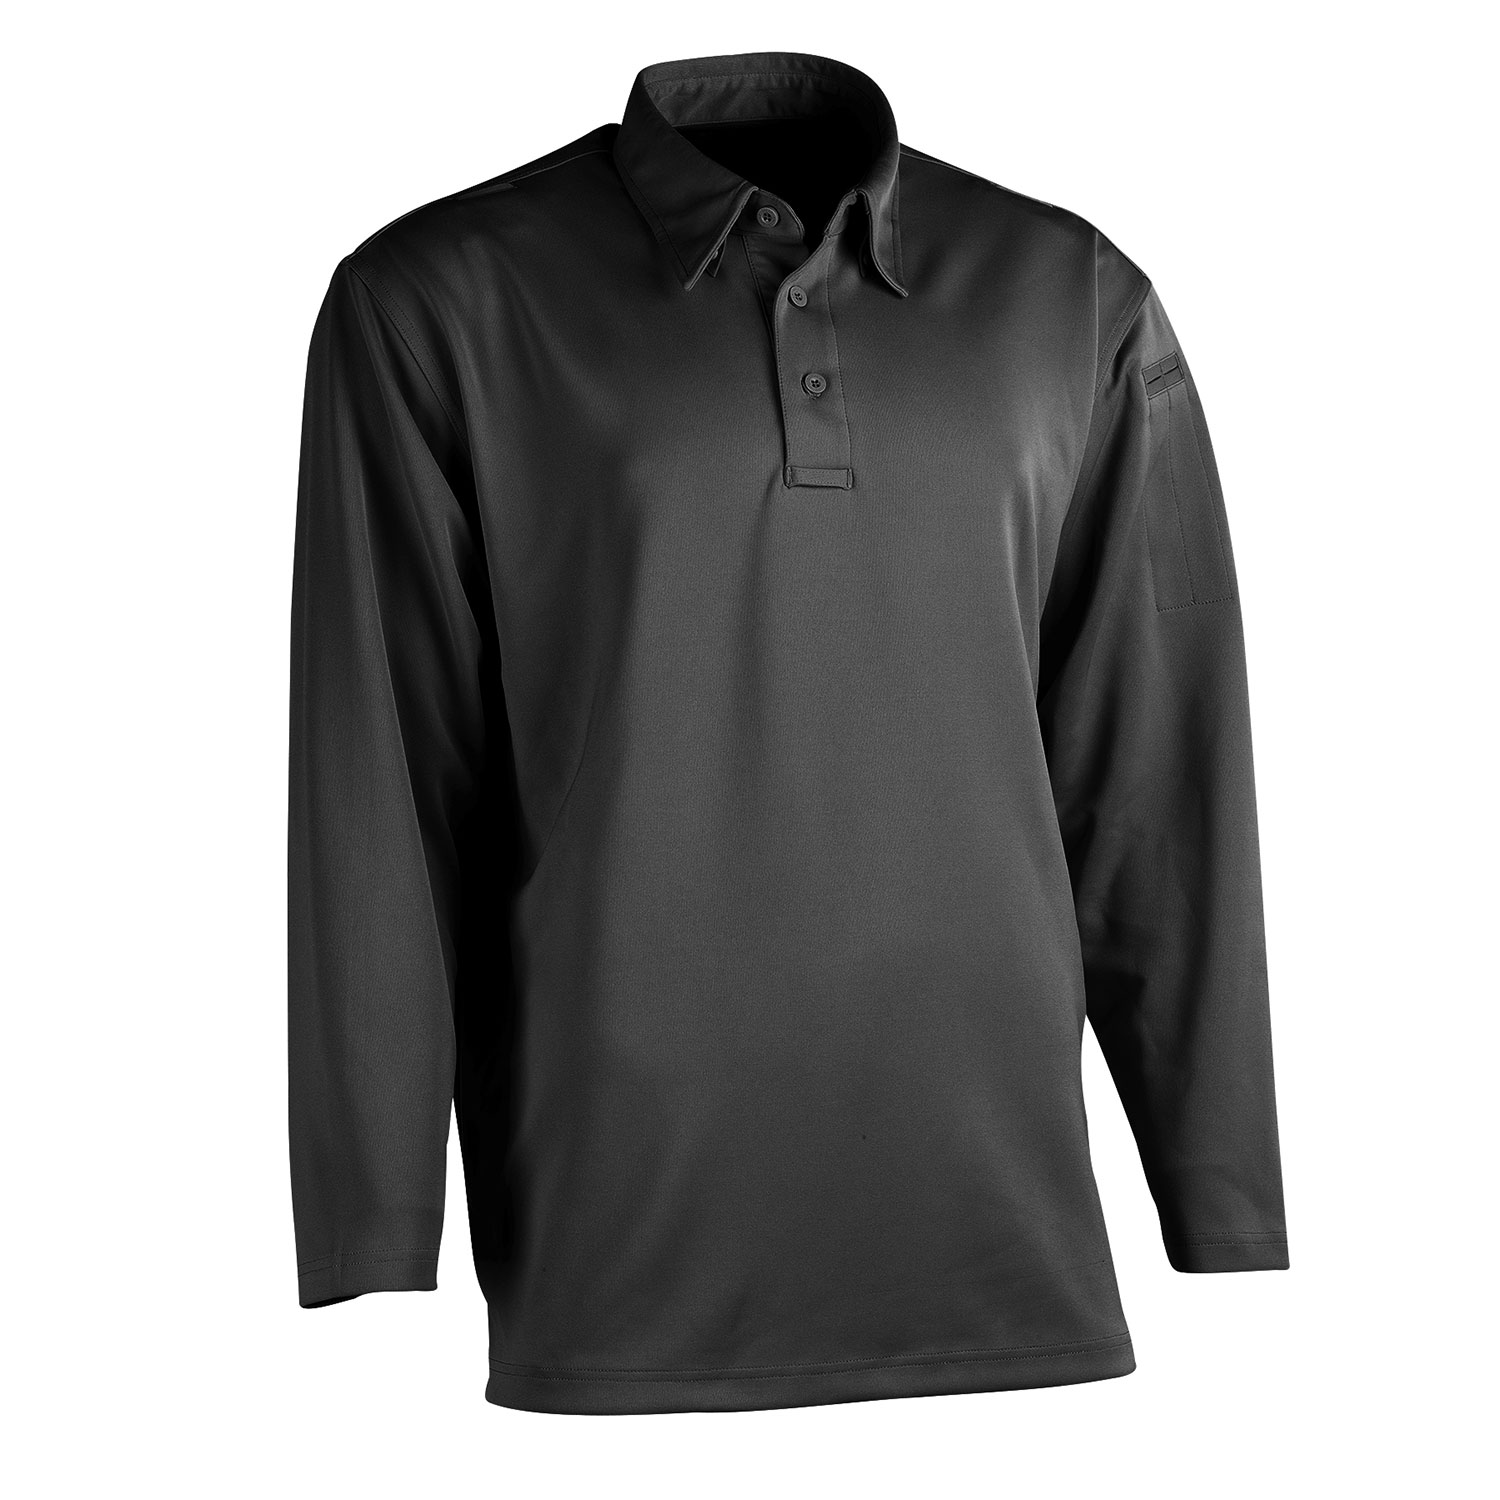 Galls Mens Long Sleeve CoolBest II Performance Polo